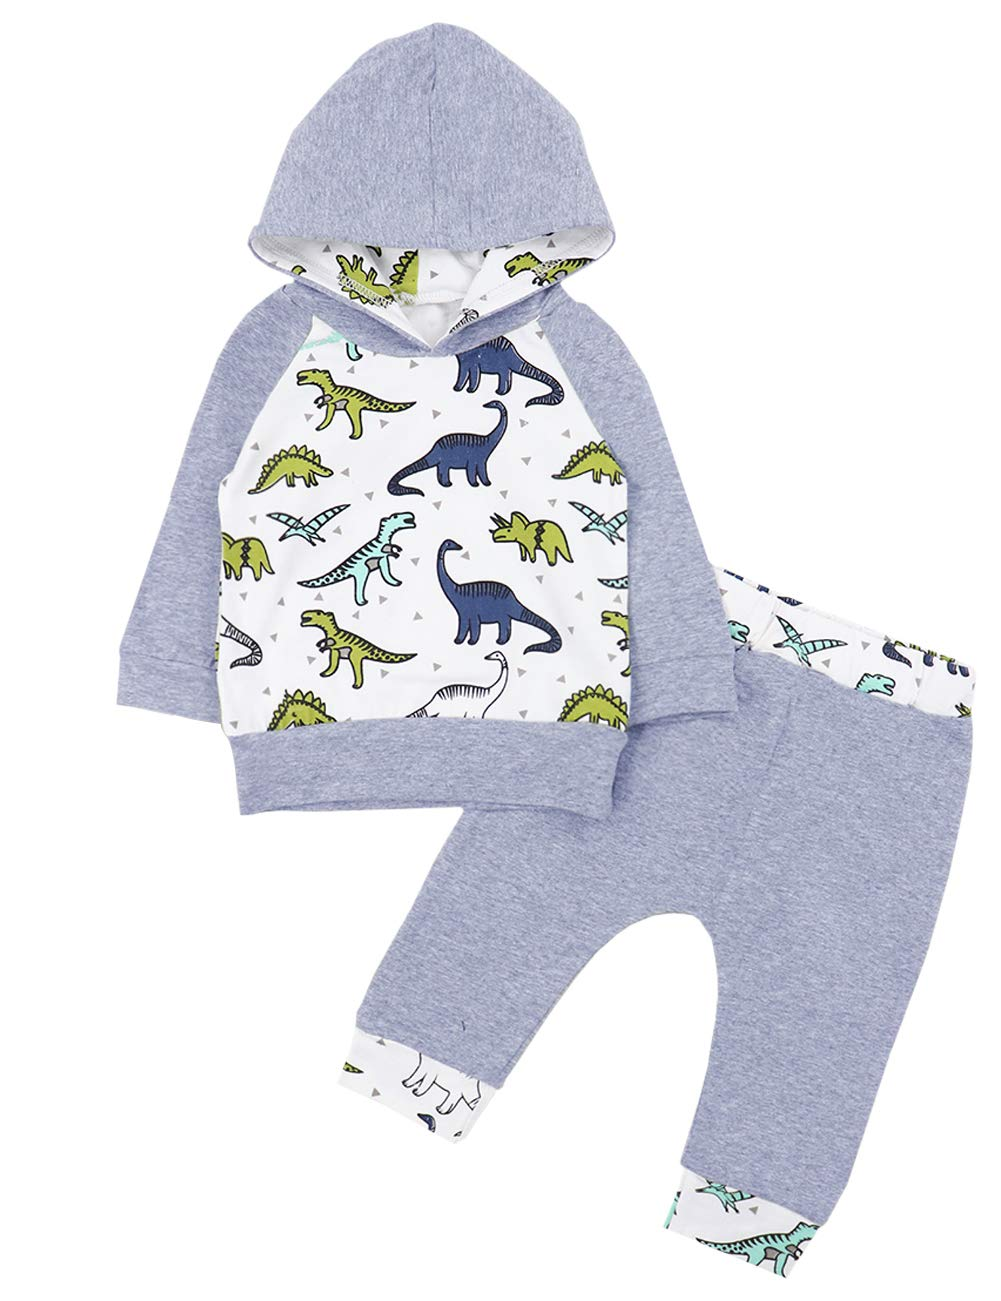 Newborn Baby Boy Girl Clothes Long Sleeve Dinosaur Hoodie Tops+ Sweatsuit Pants Outfit Set(6-12 Months) Newborn Baby Boy Girl Clothes Long Sleeve Dinosaur Hoodie Tops+ Cute Pants 2PCS Outfit Set